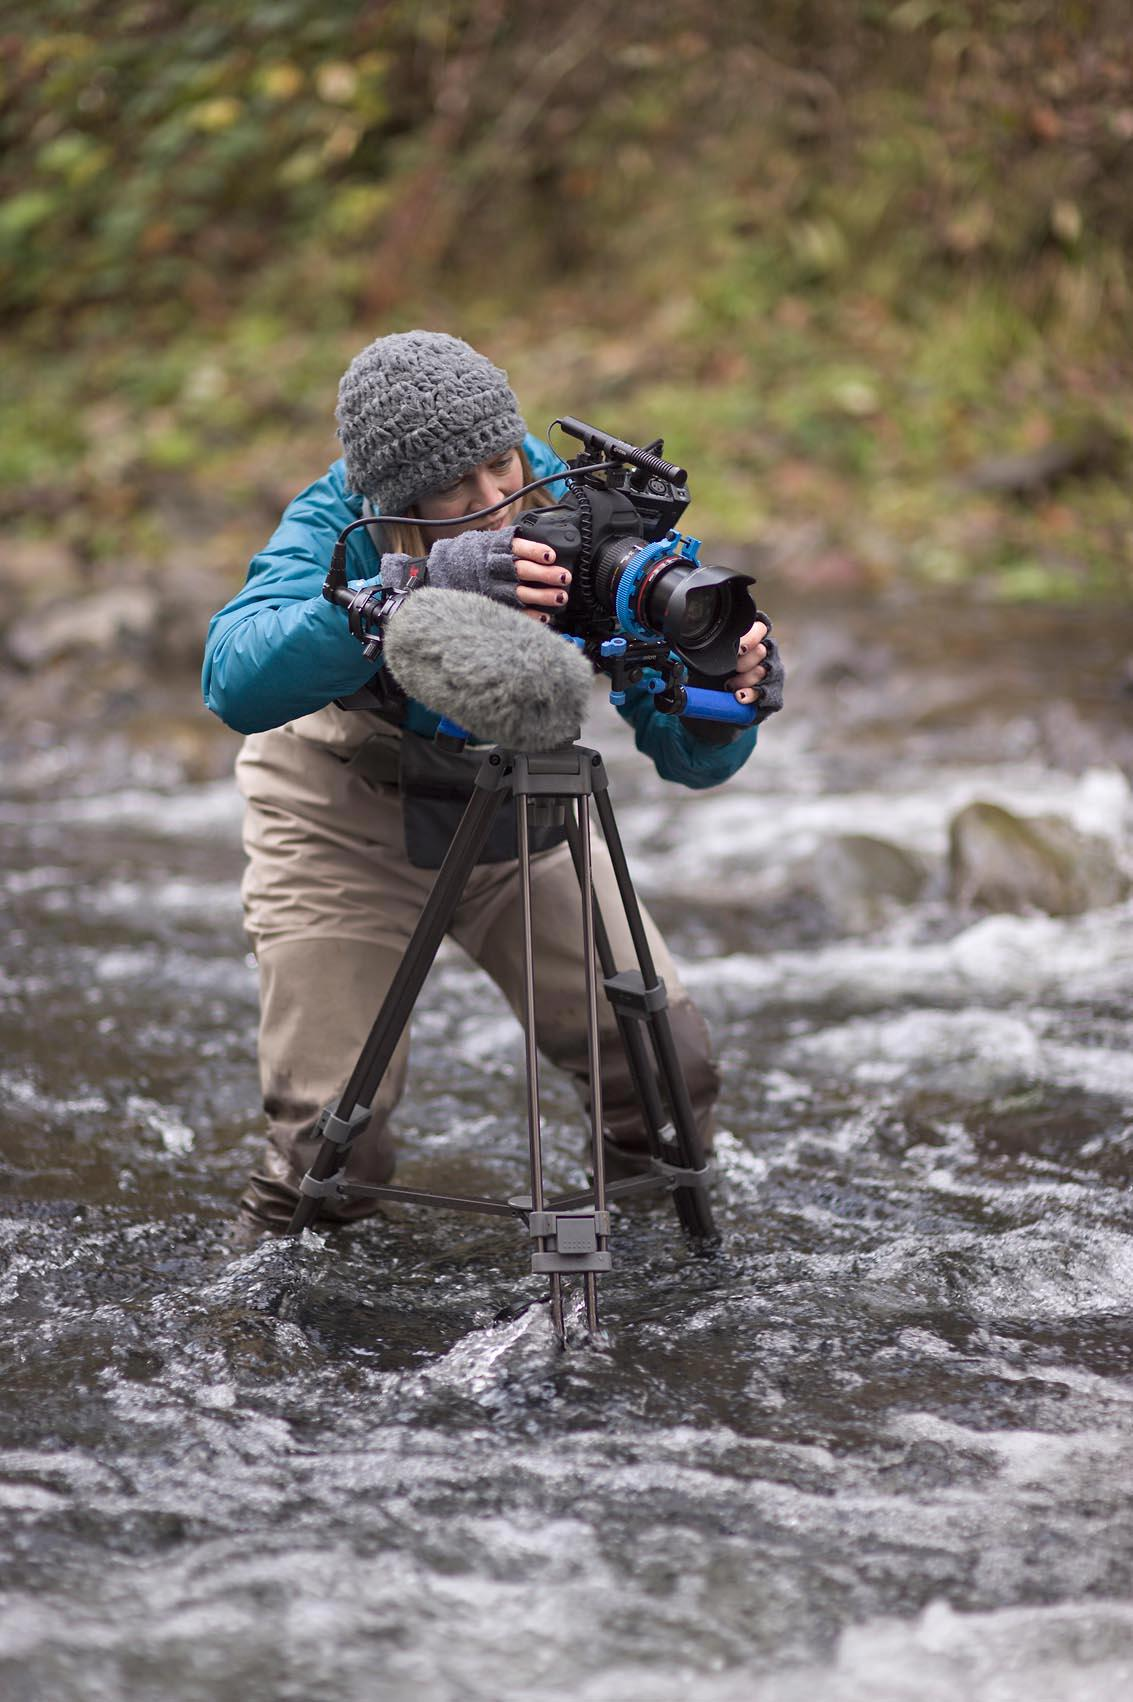 sarah filming in creek.jpg